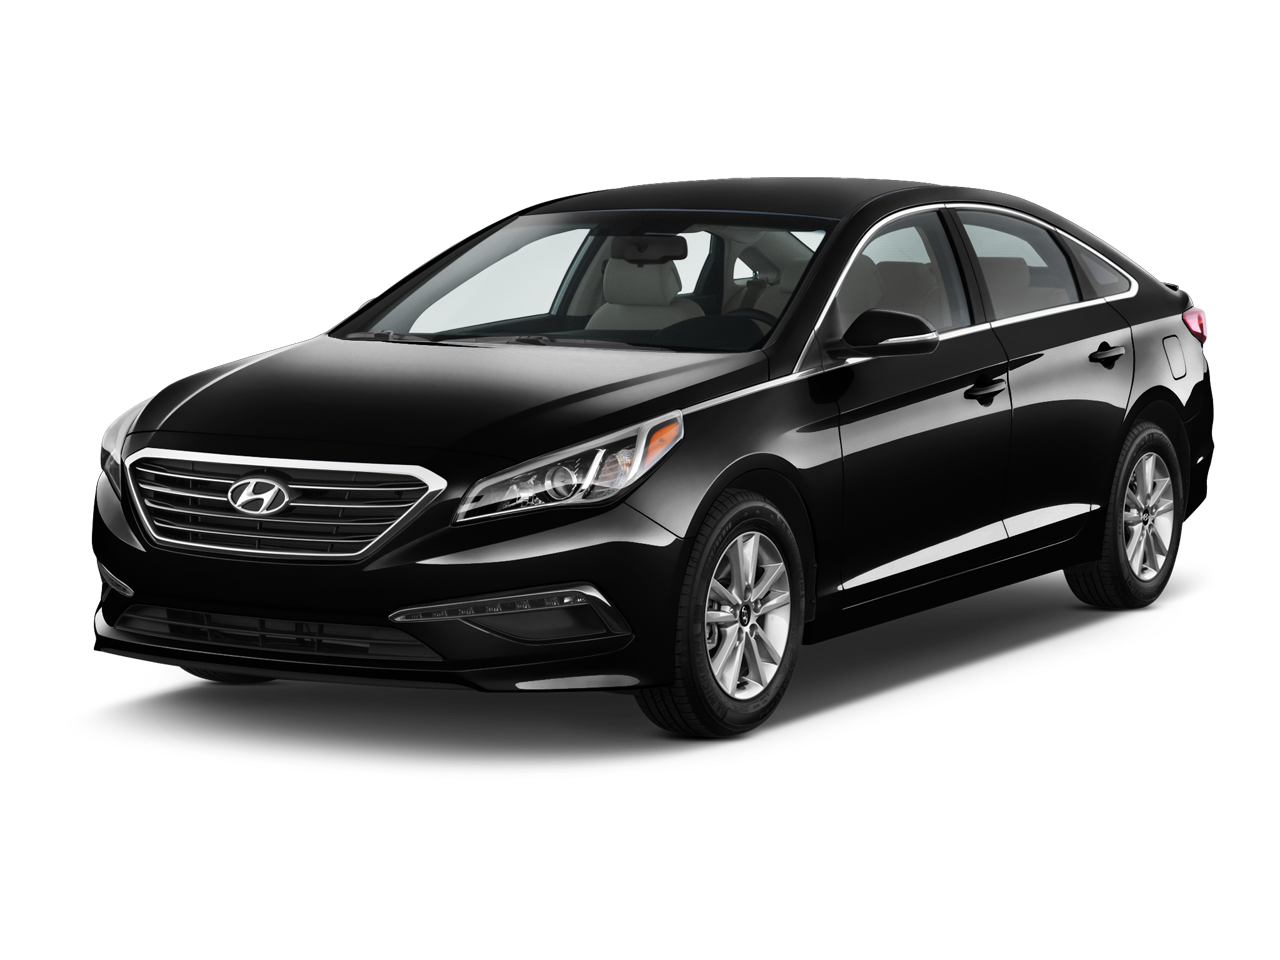 new 2017 hyundai sonata se near fayetteville nc lee hyundai. Black Bedroom Furniture Sets. Home Design Ideas